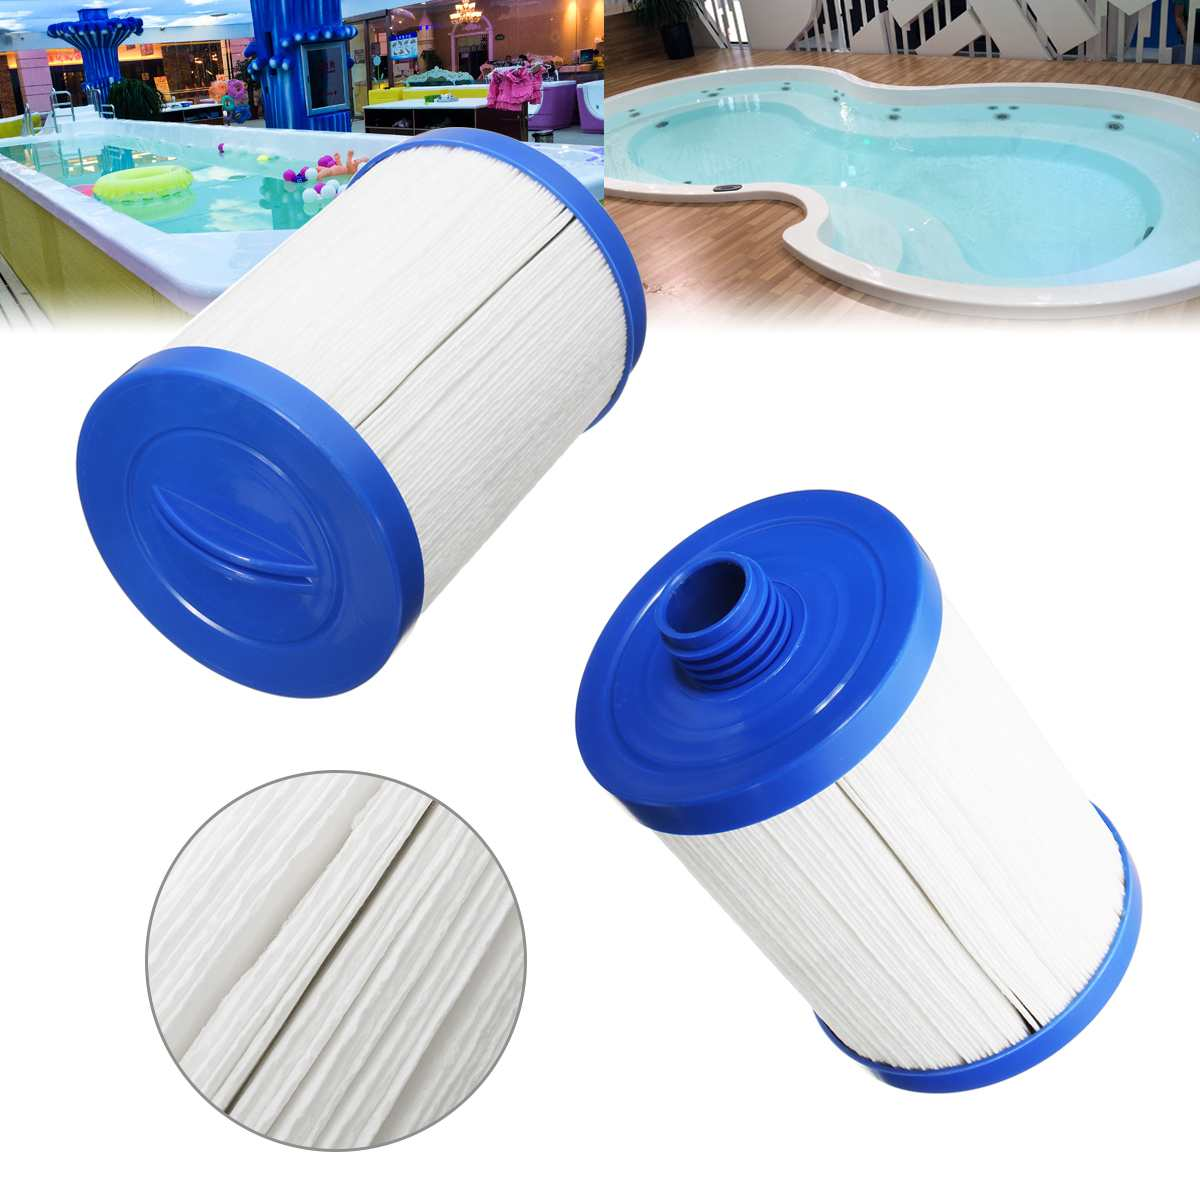 Filter Cartridge Replacement for Sapphire Cyclone Monarch LA Spas Hot Tub PoolSpa Filter Semi-Circular Handle image